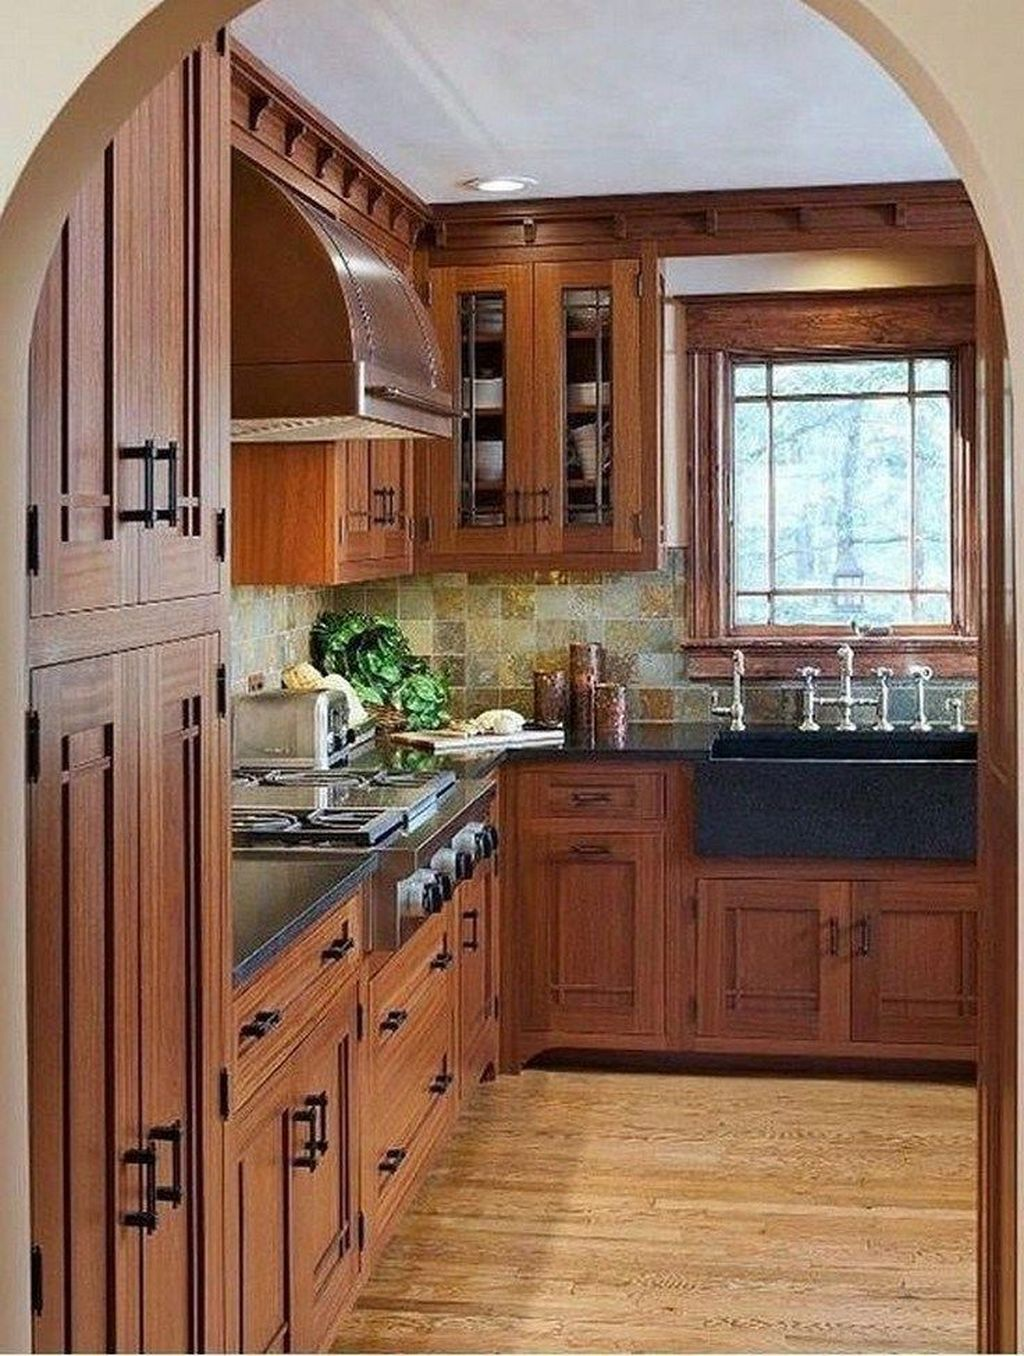 31 fabulous modern rustic kitchen cabinets in 2020 on awesome modern kitchen design ideas id=69386